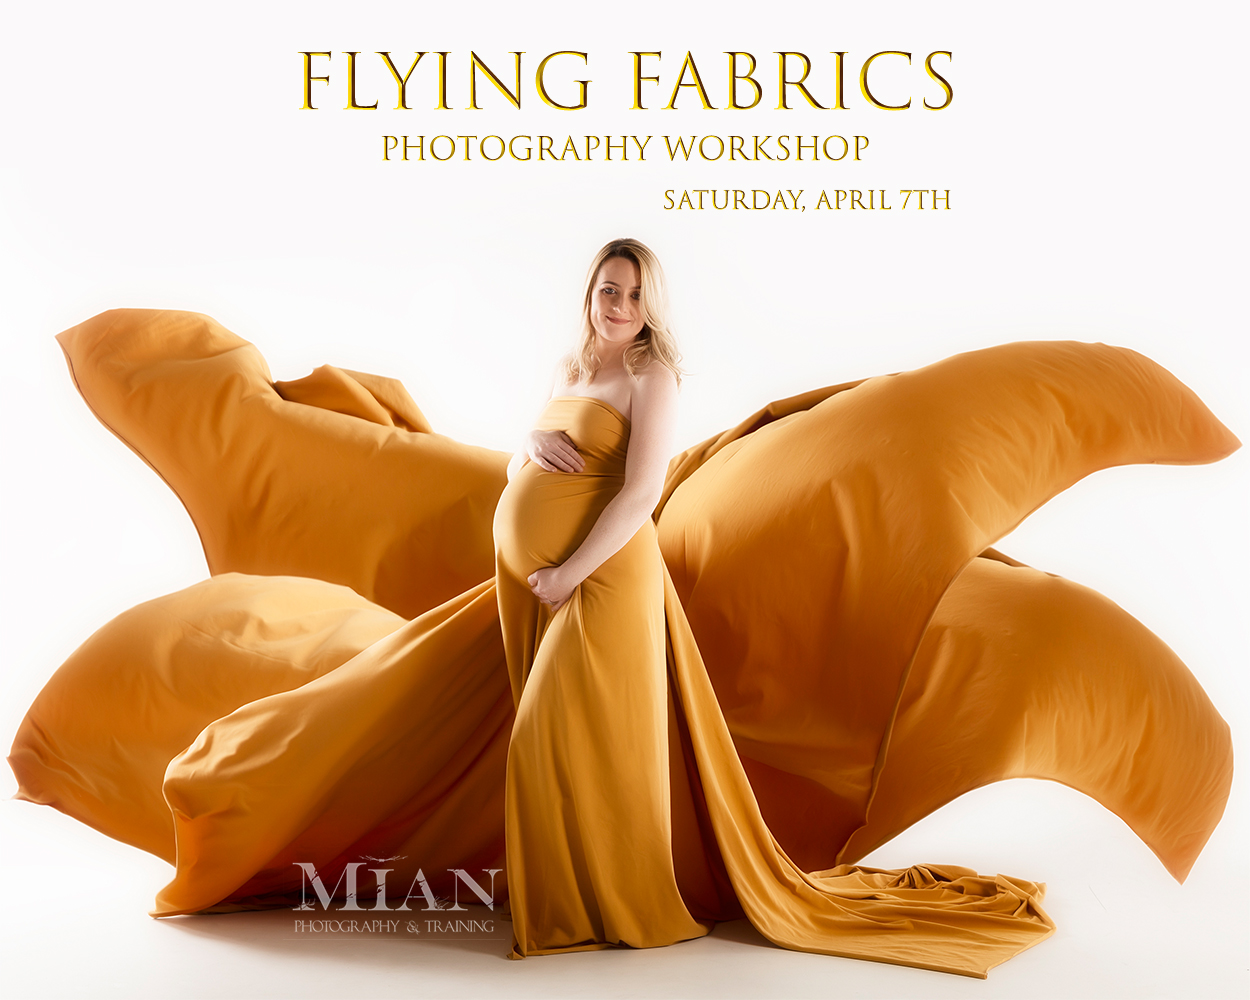 Fabric and Maternity Photography Workshop Cavan Meath